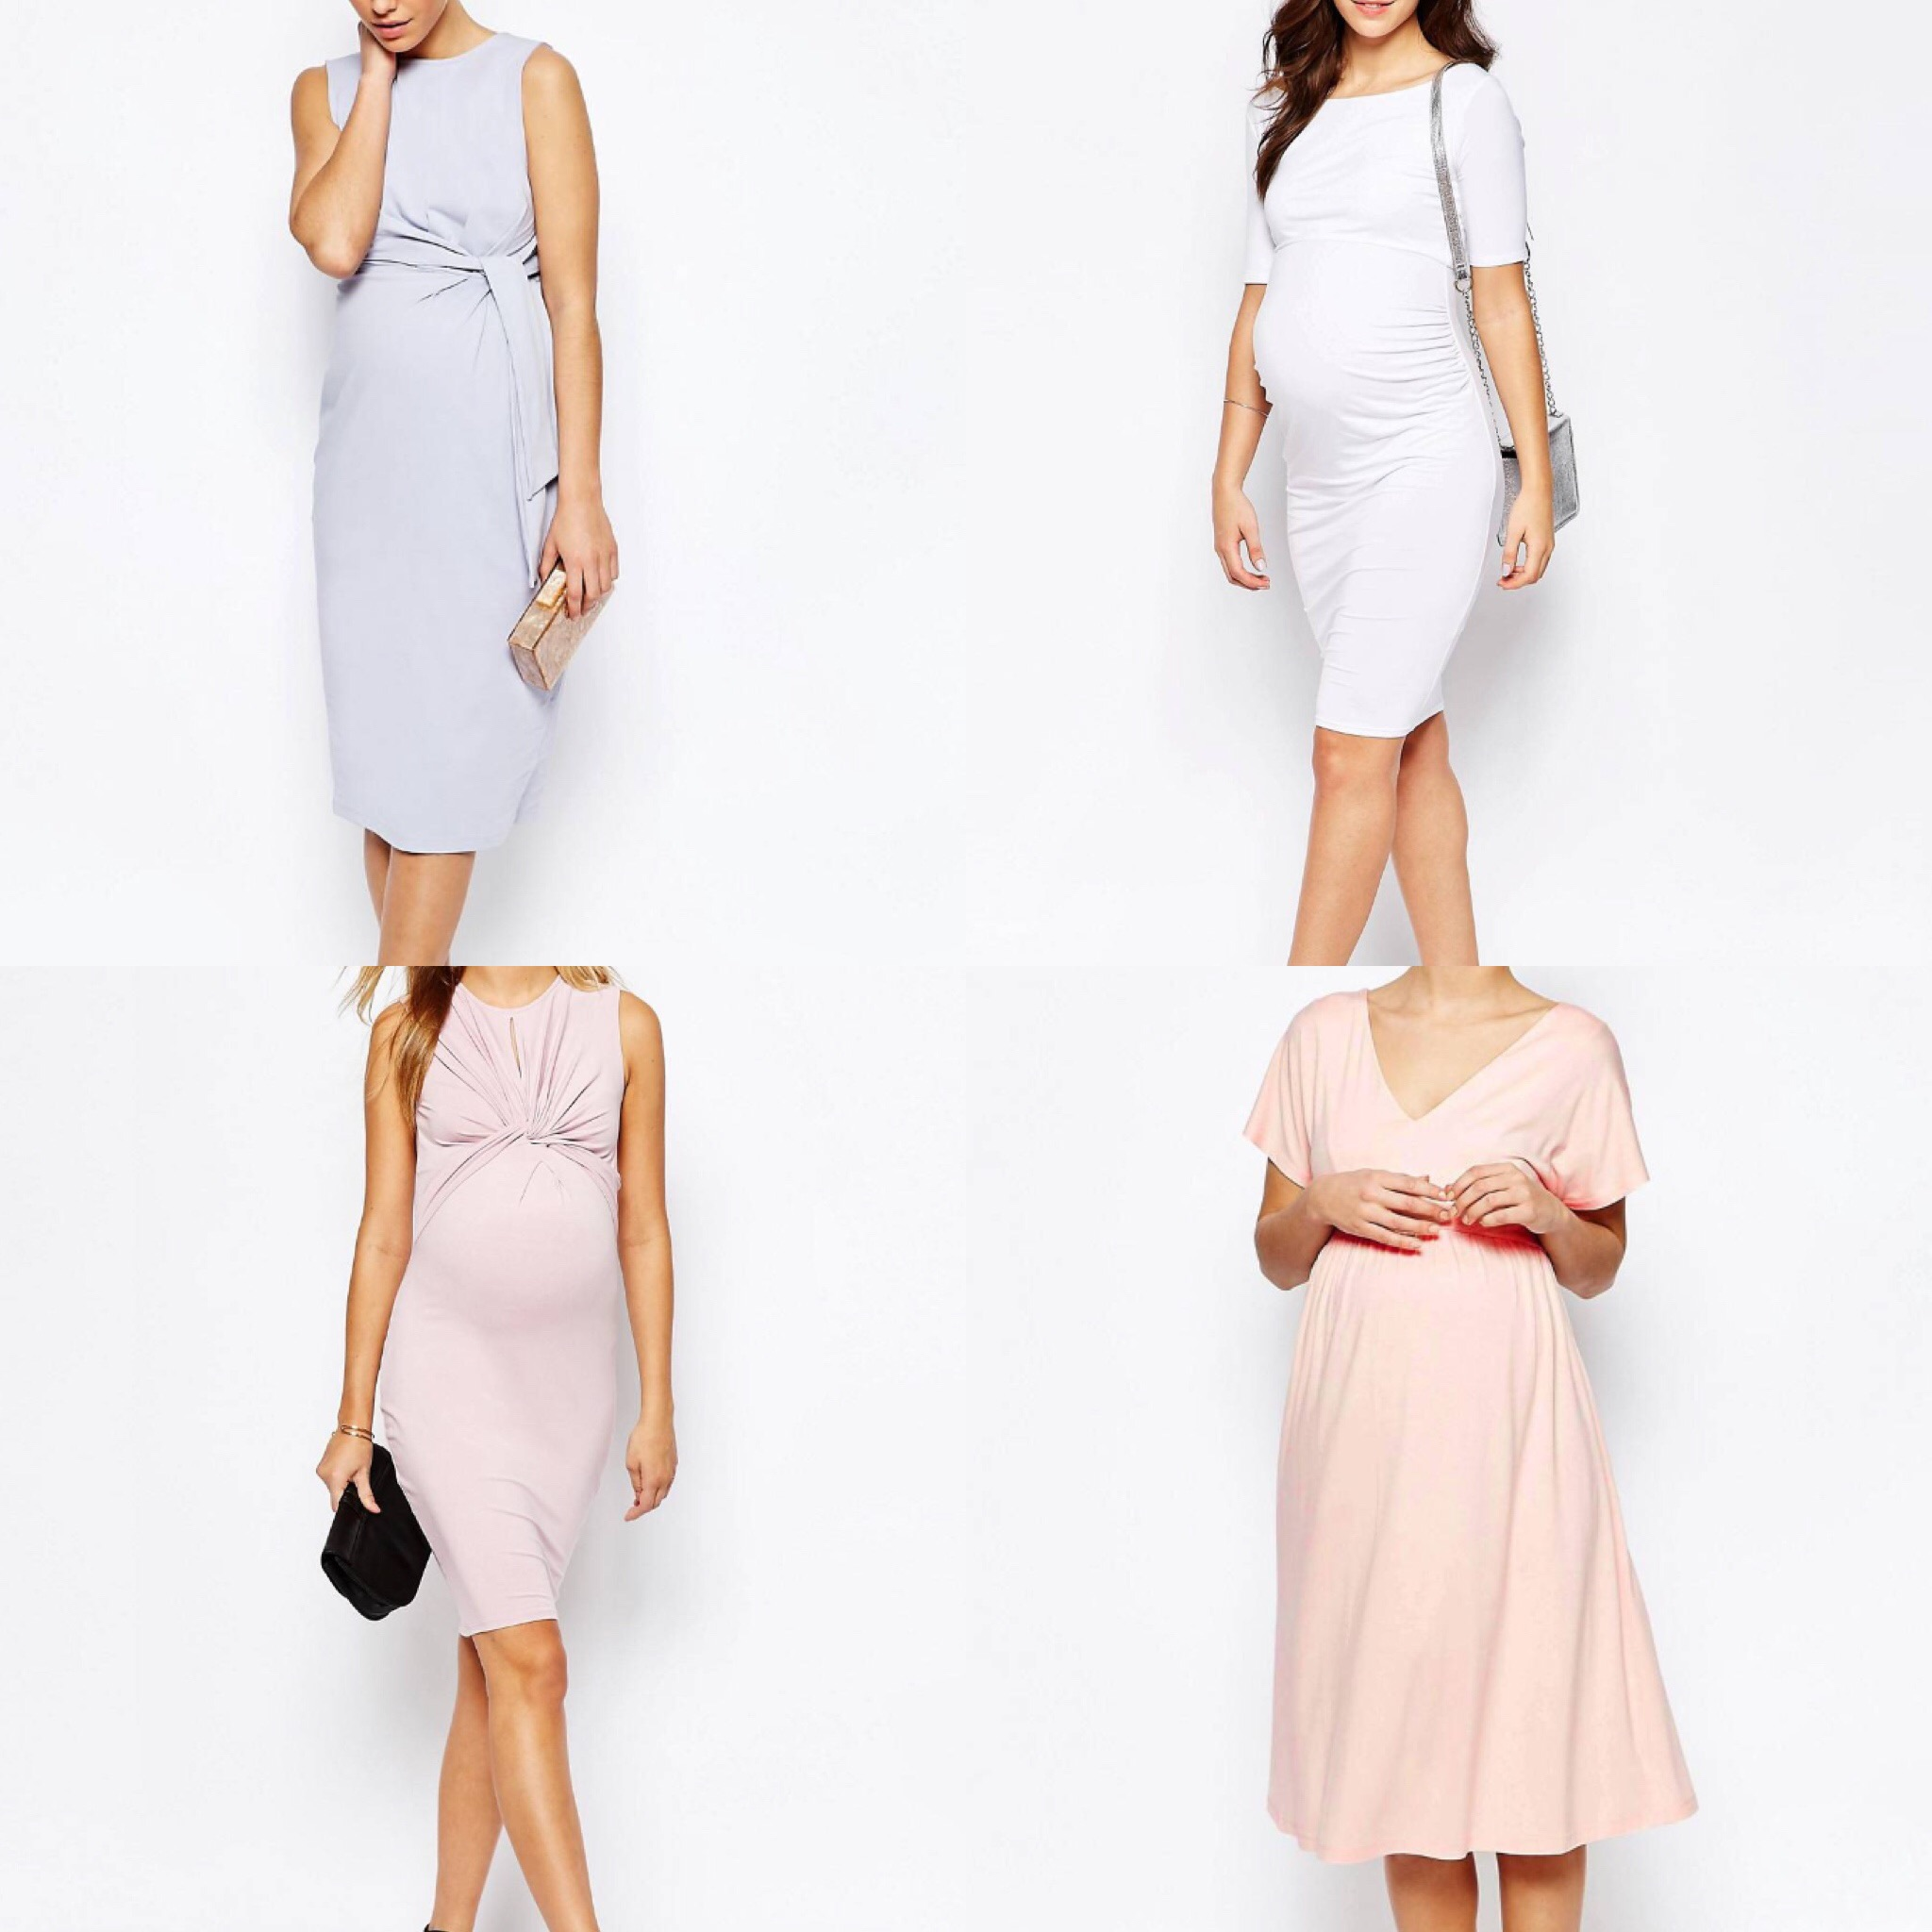 c5bb542cefb87 Maternity Occasion Wear Picks